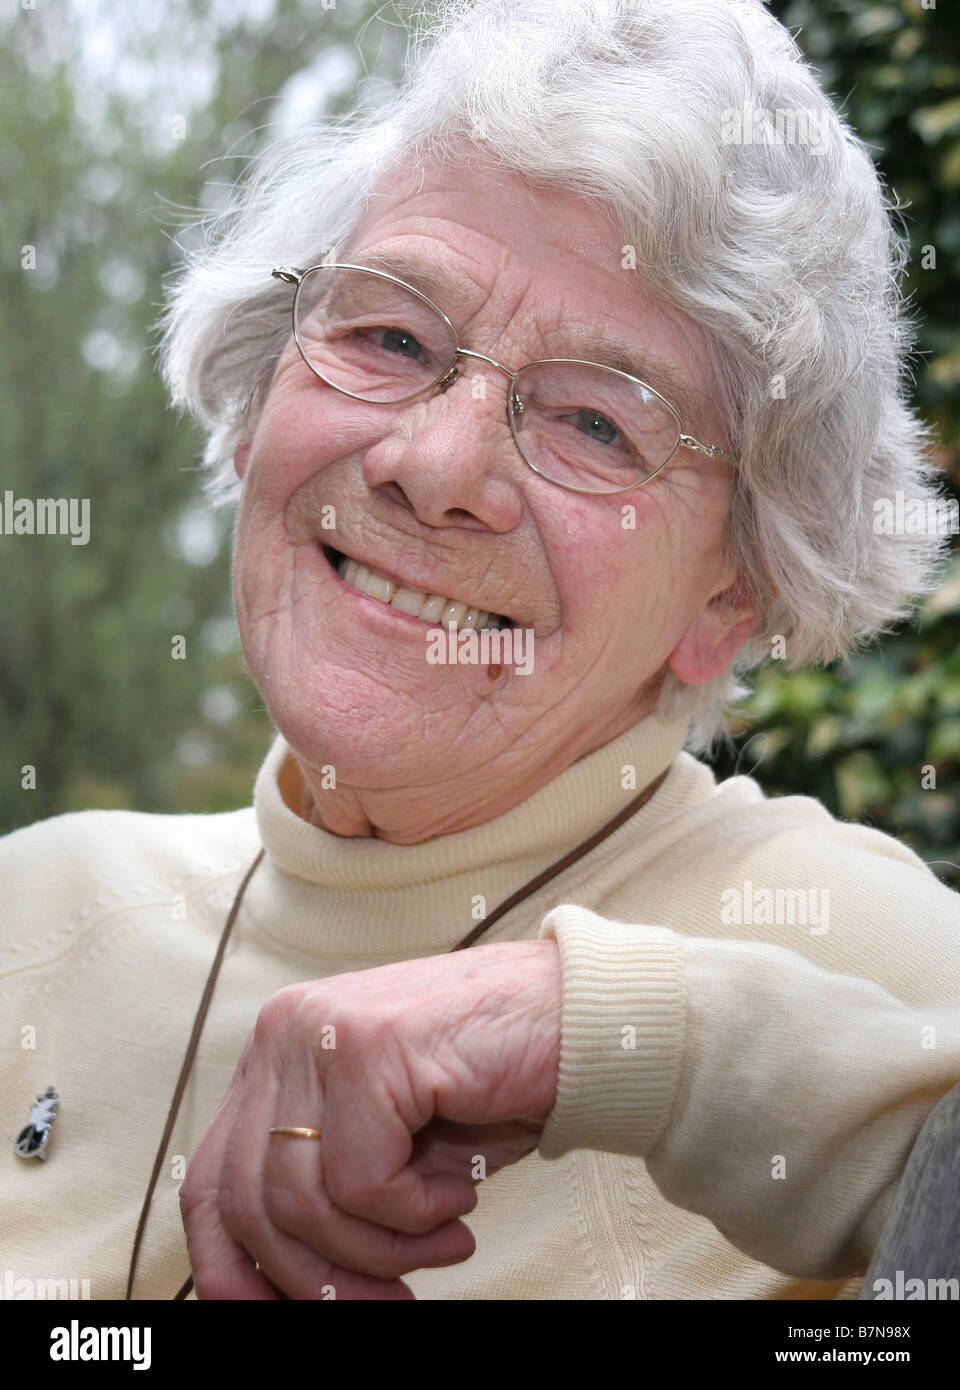 Jean Kaye now 80 was a major campaigner for peace in the 80's taken 2006 Oxfordshire - Stock Image